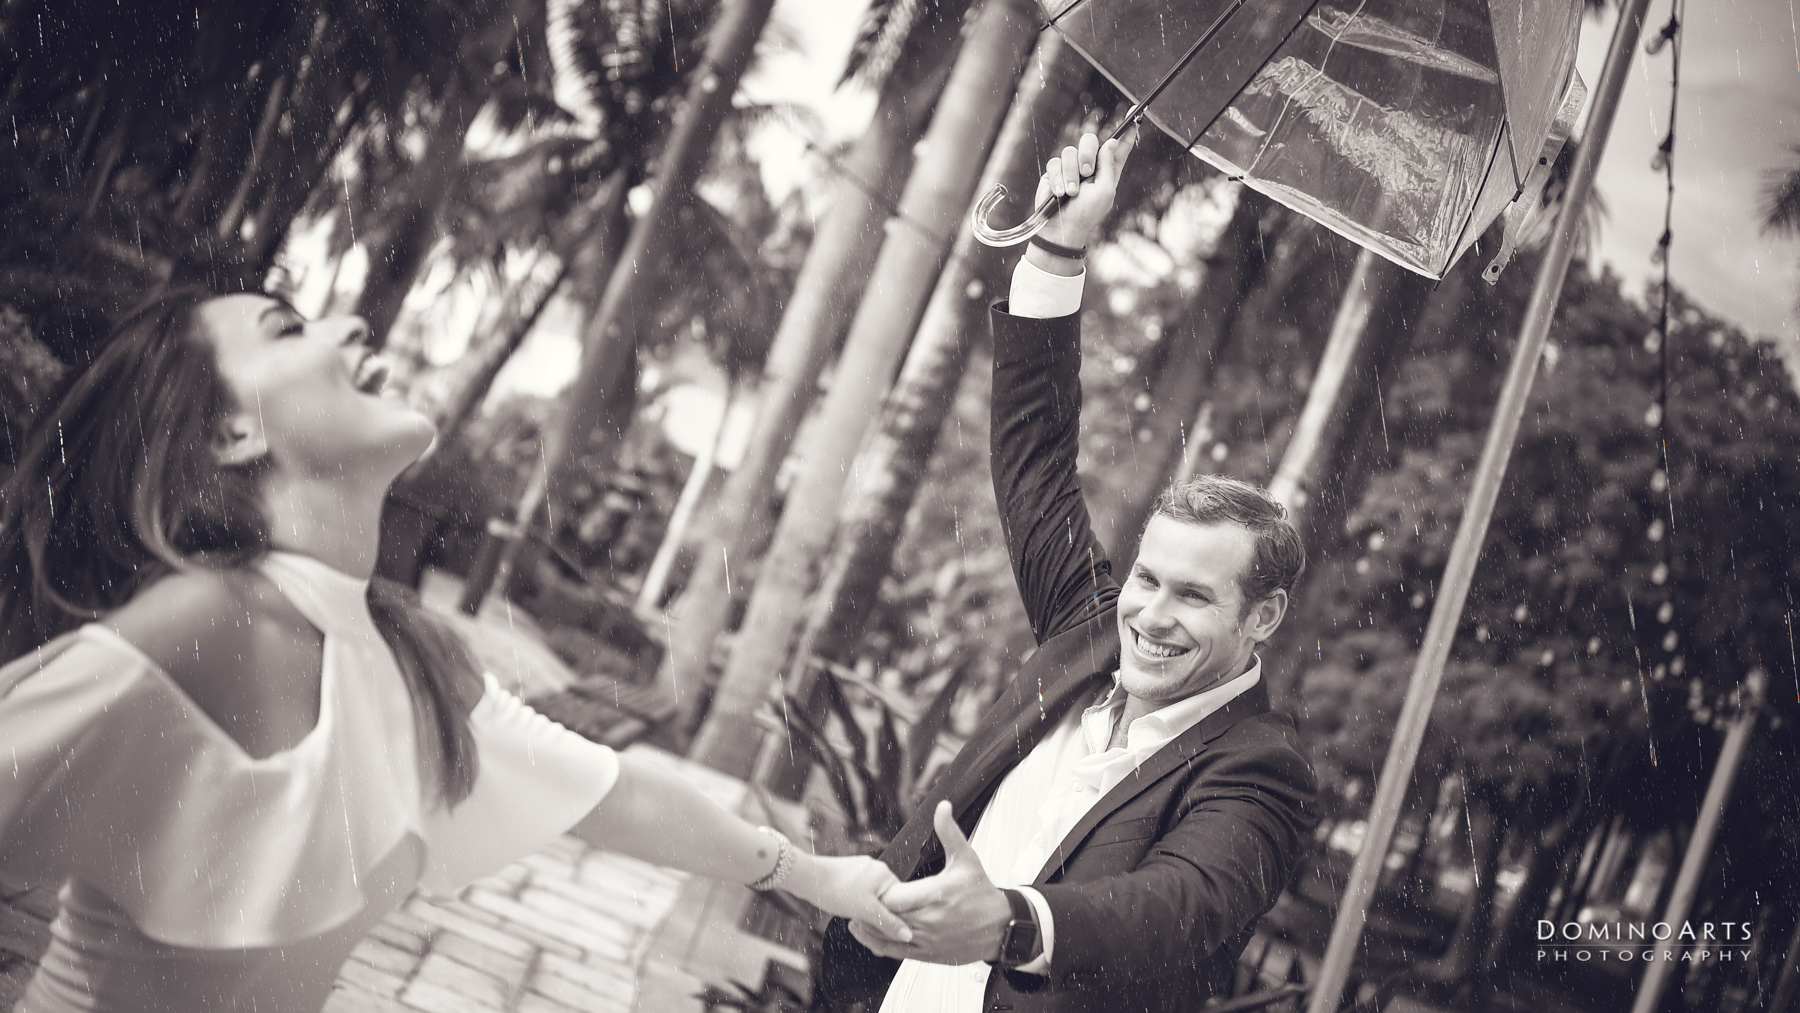 Dancing in the Rain Engagement photography at Riverfront, Fort Lauderdale